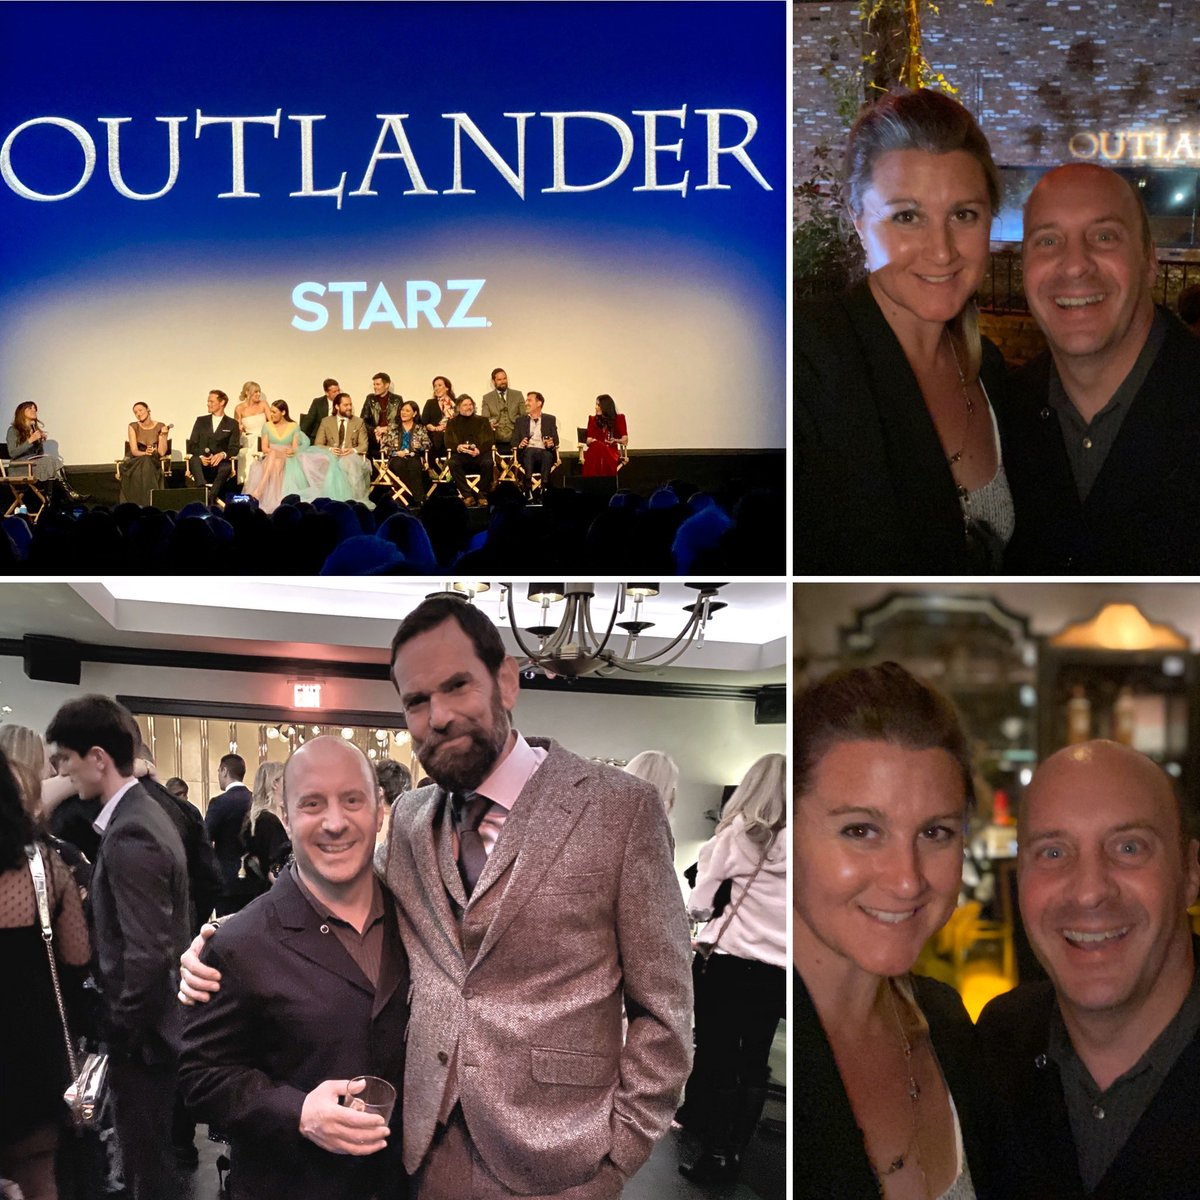 With my friend Ashley at the @outlander_starz #OutlanderSeason5Premiere last night! Met @caitrionabalfe @bearmccreary @rikrankin @edwardjspeleers & discussed the nature of human consciousness & perception with #DuncanLacroix  Thank you @RonDMoore & @TallShipProds for inviting me!<br>http://pic.twitter.com/9tnrvQIrr4 – à Hollywood Palladium